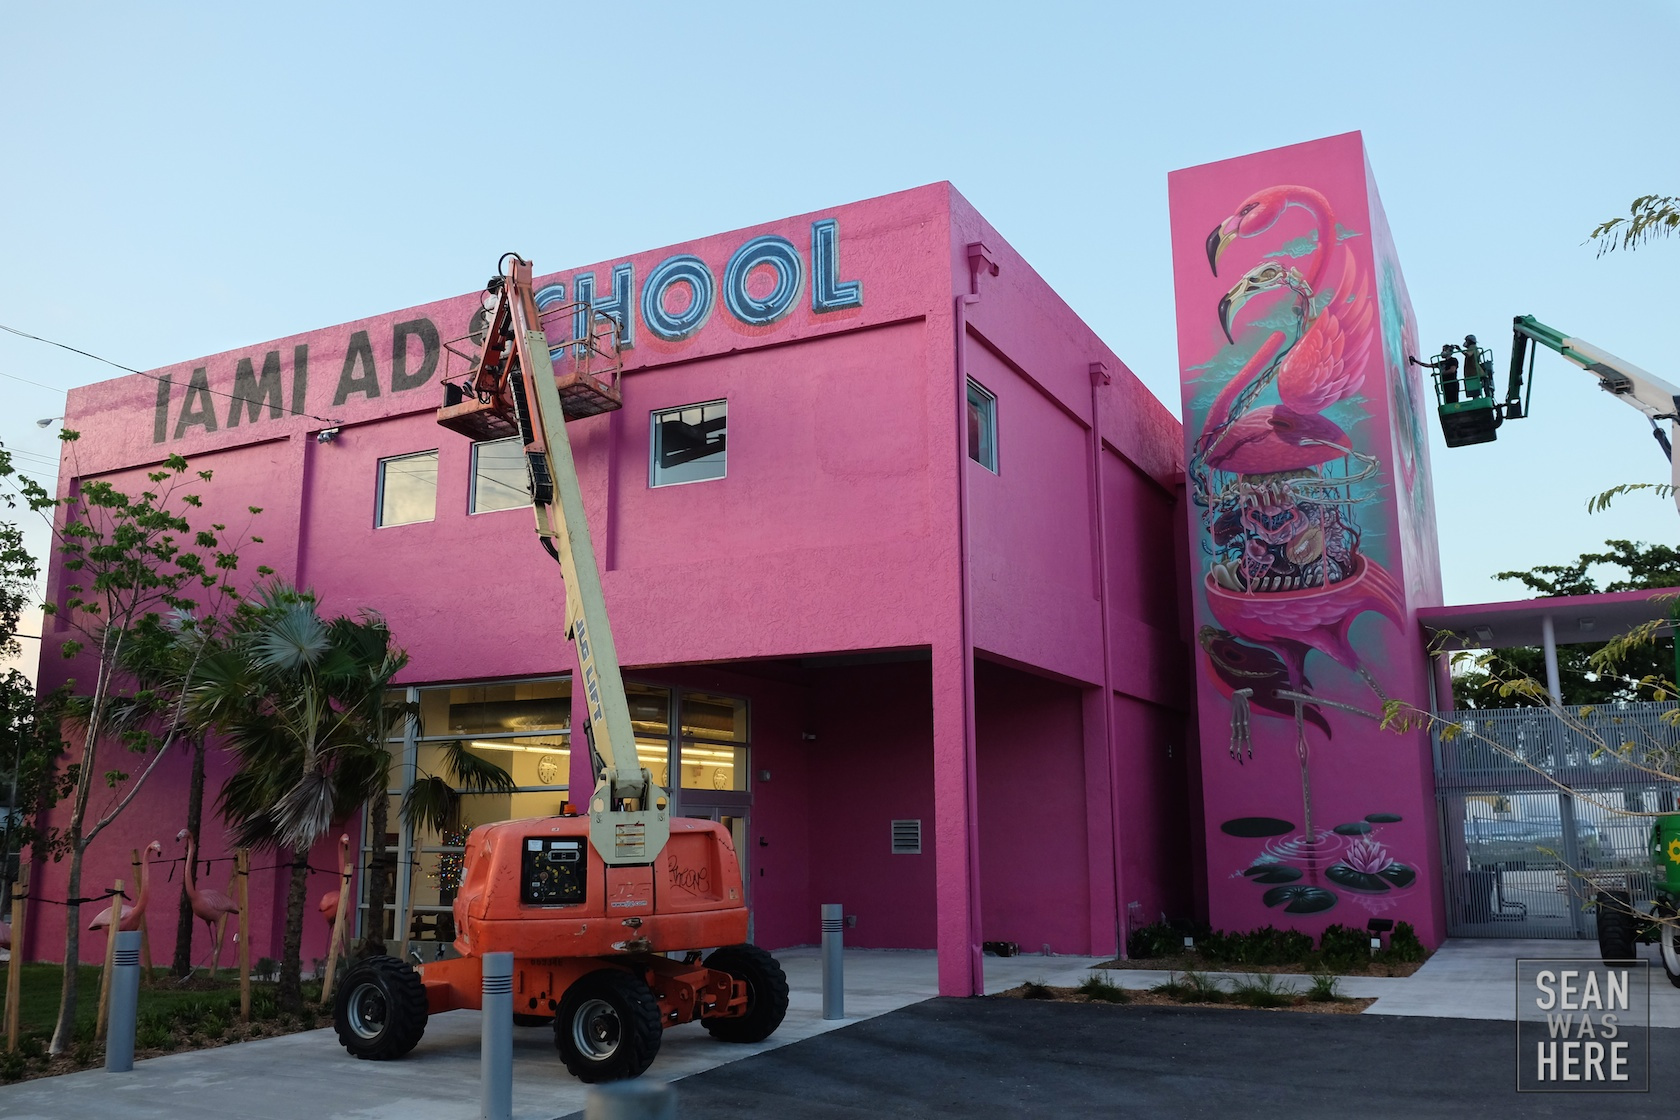 Five8 (left) and Nychos painting up the new Miami Ad School location in Wynwood (having moved from South Beach). Wynwood Miami